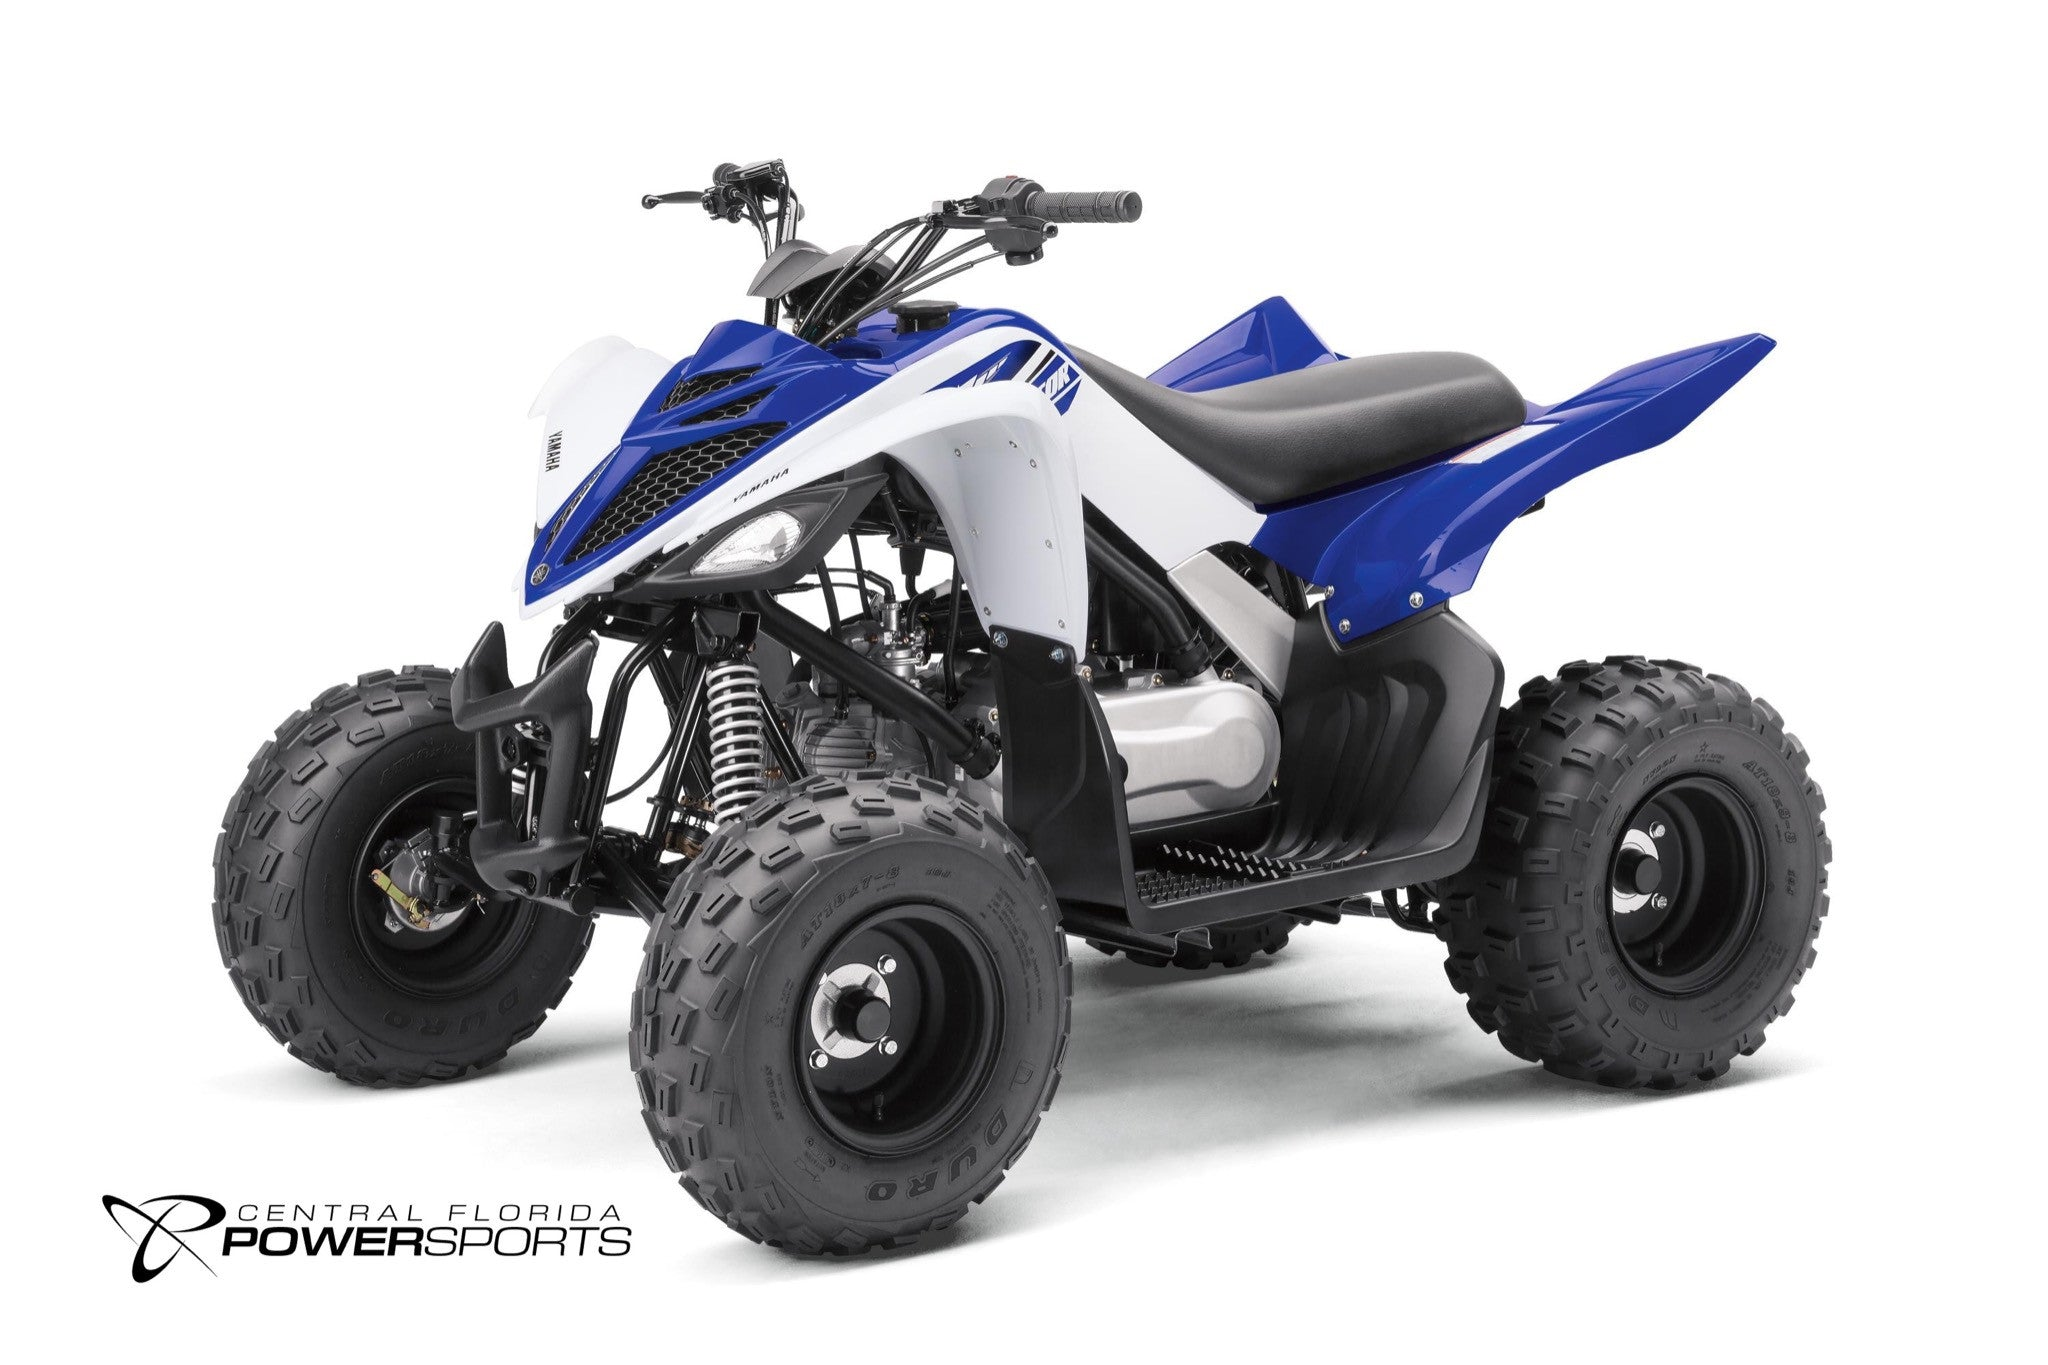 for sale 2017 yamaha raptor 90 sport atv for kids central florida powersports. Black Bedroom Furniture Sets. Home Design Ideas